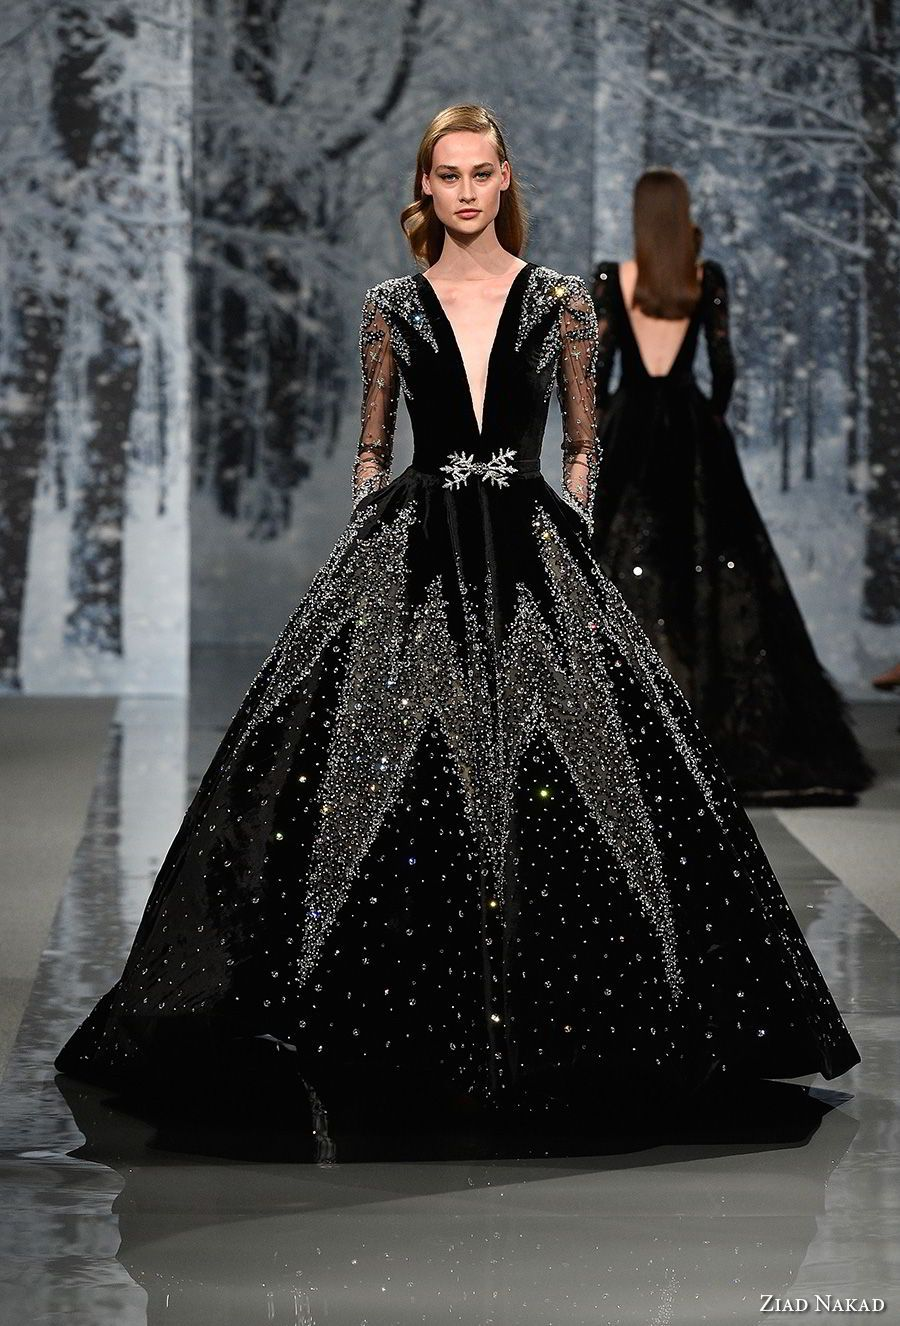 Ziad nakad couture fall dresses u ucthe snow crystalud collection